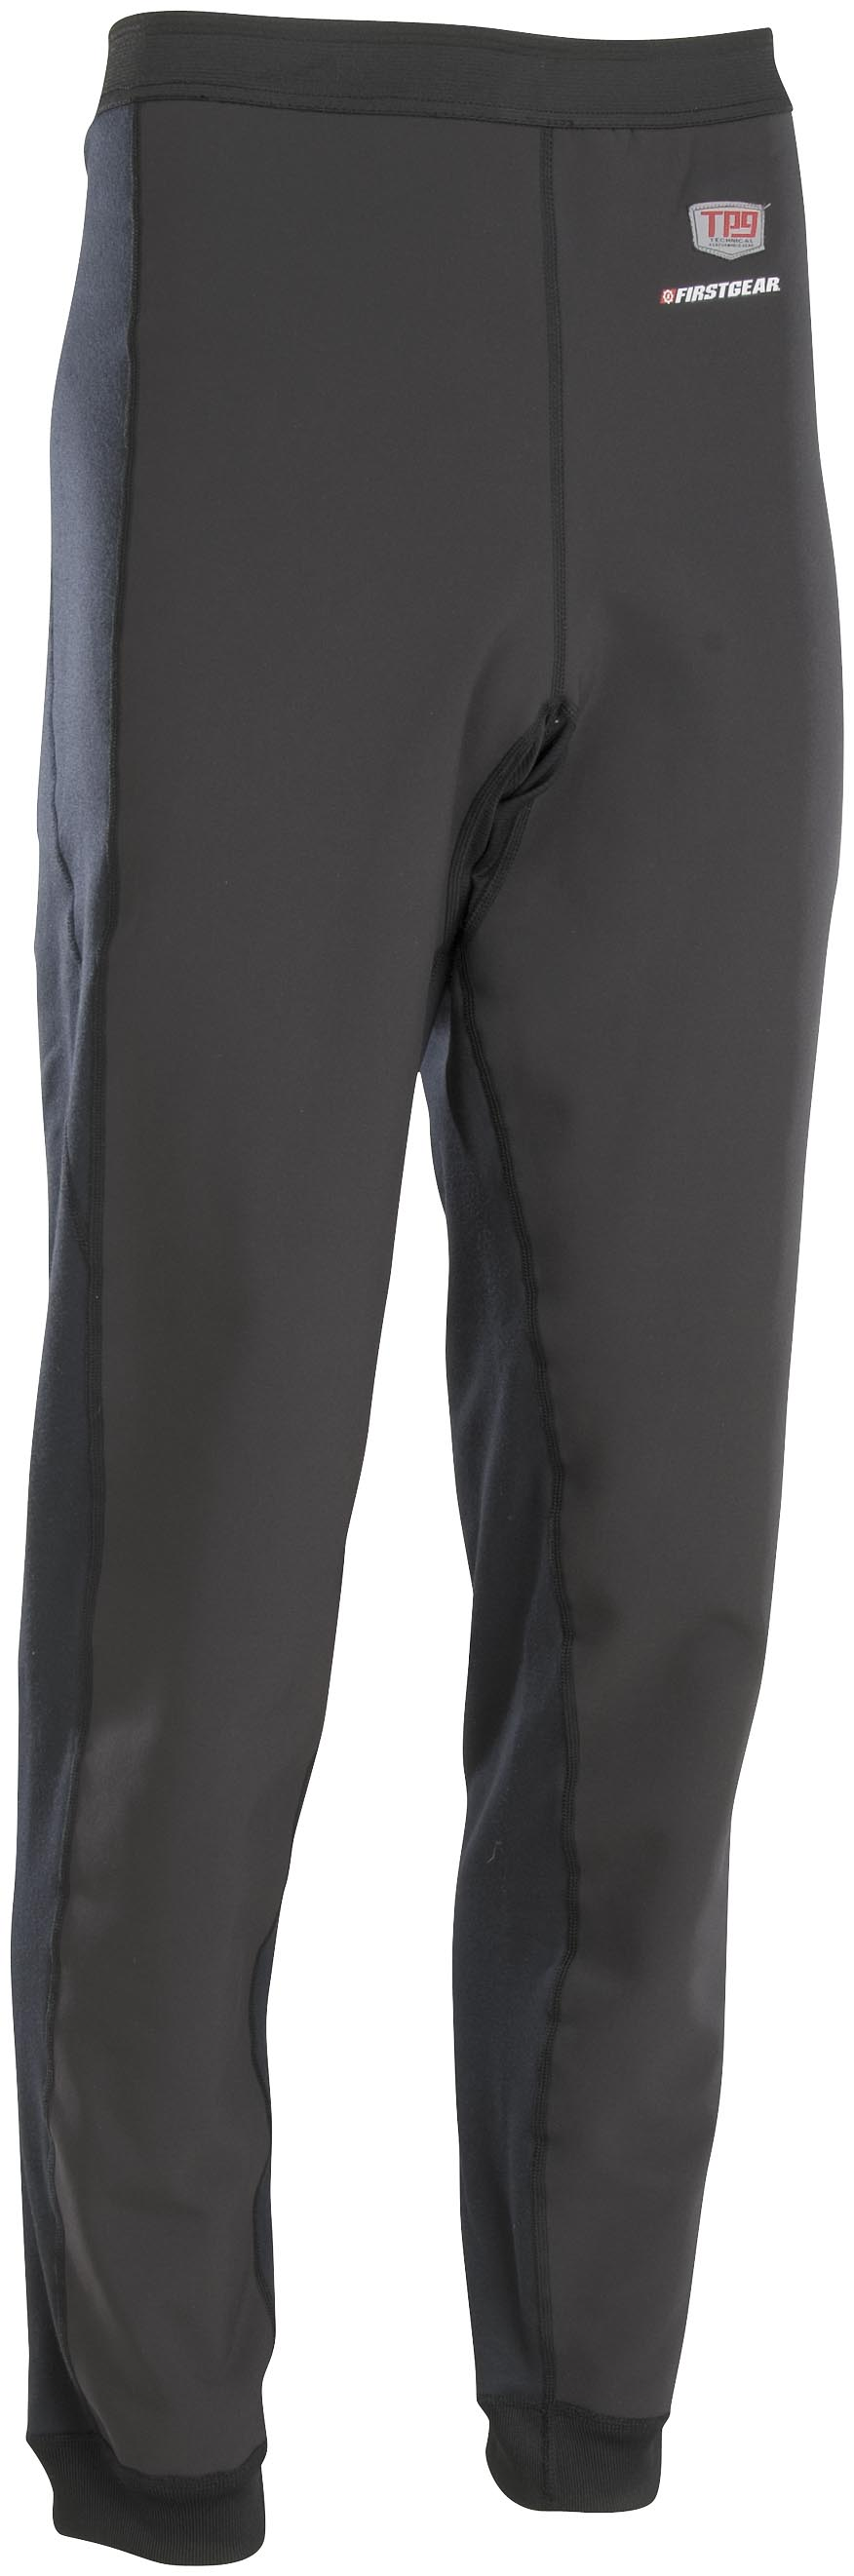 Firstgear TPG Winter Base-Layer Pants